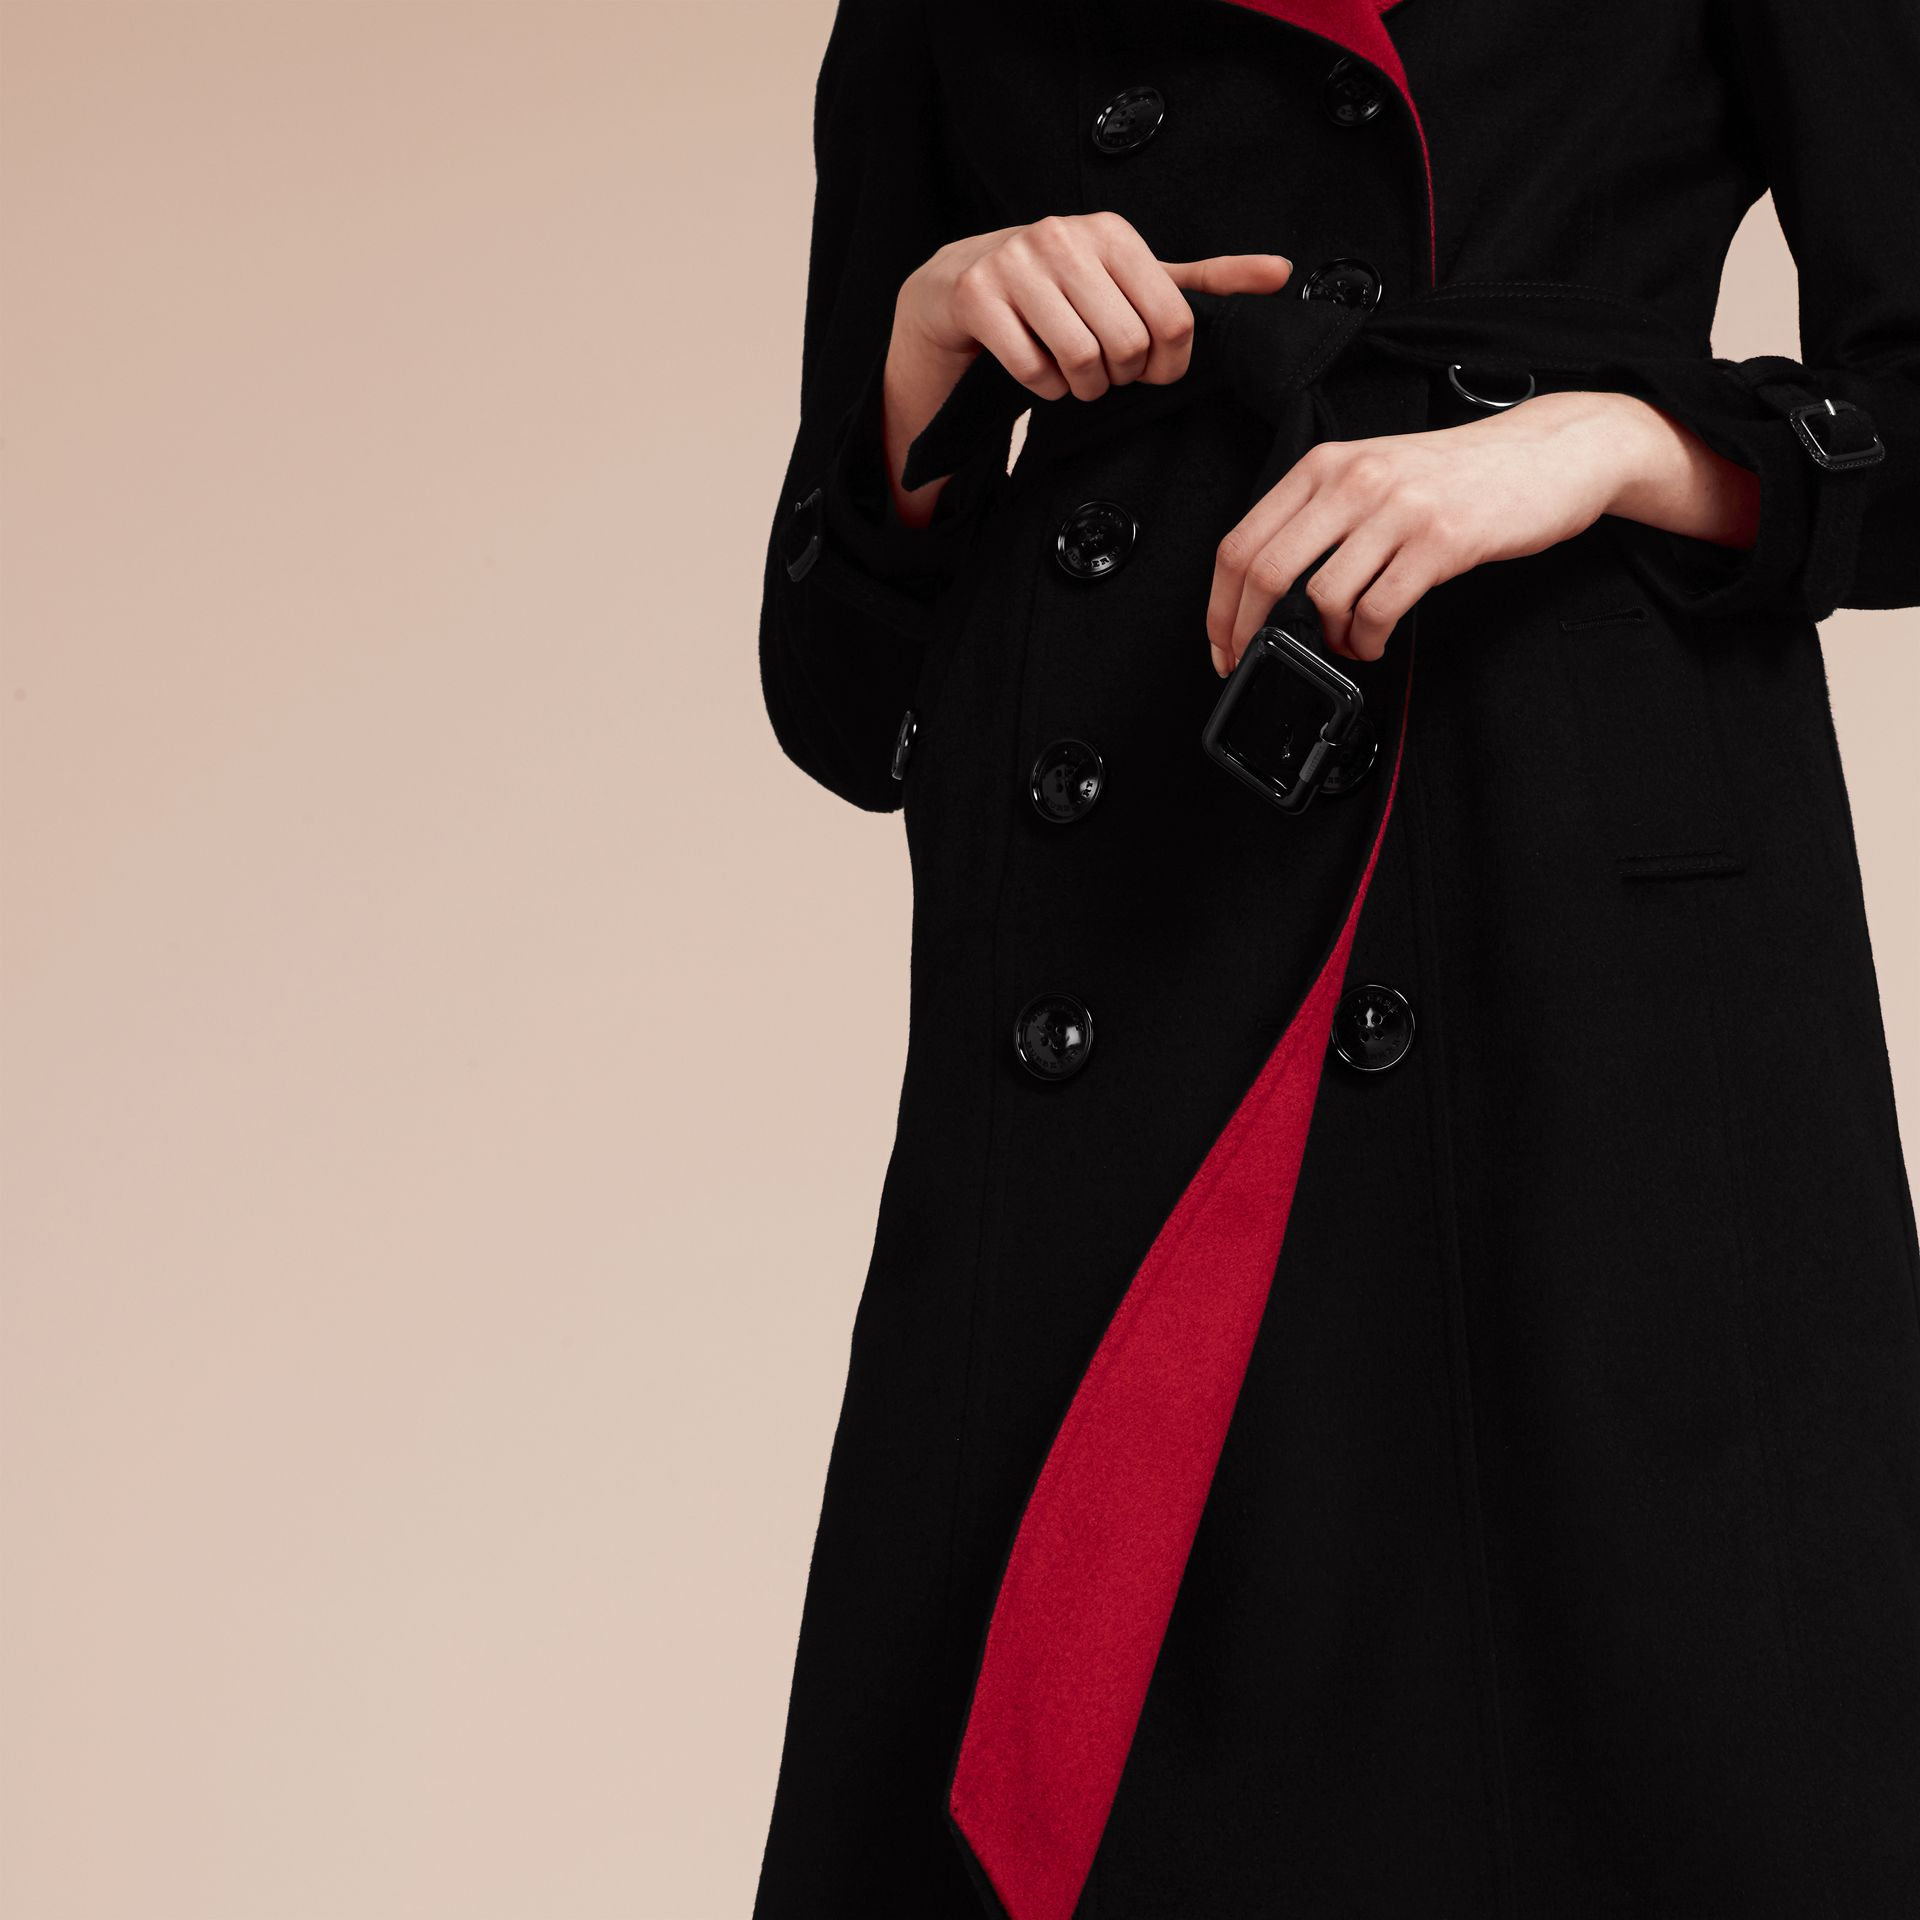 Noir Trench-coat en cachemire de coupe slim - photo de la galerie 7